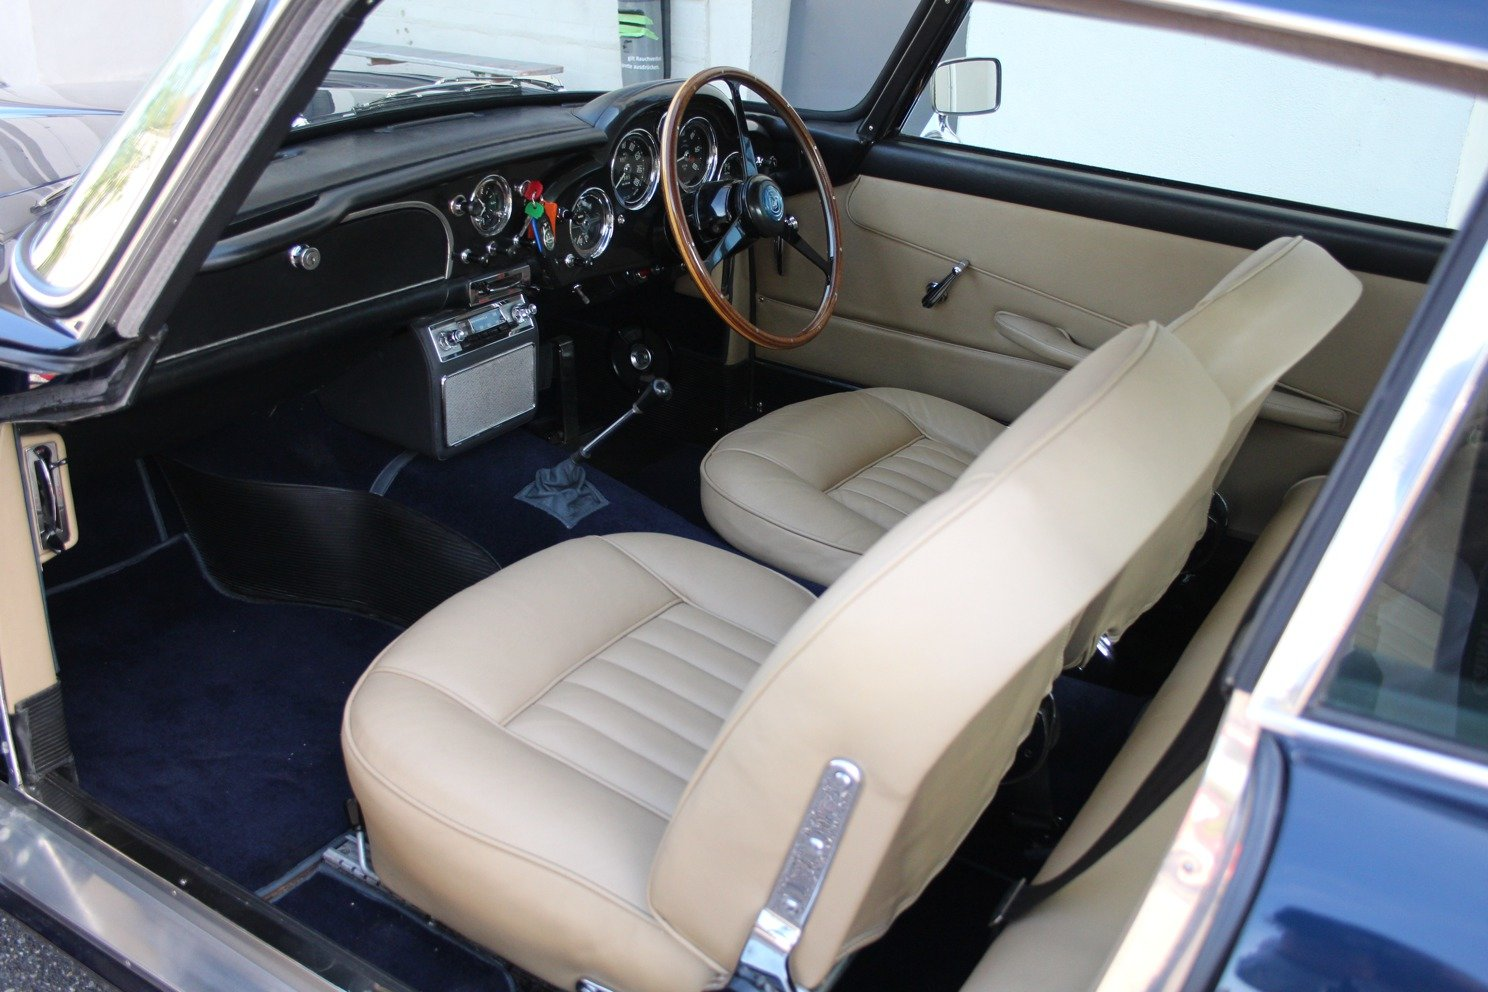 1963 Aston Martin DB4 Series V RHD - Ex. Victor Gaunlett For Sale (picture 3 of 6)